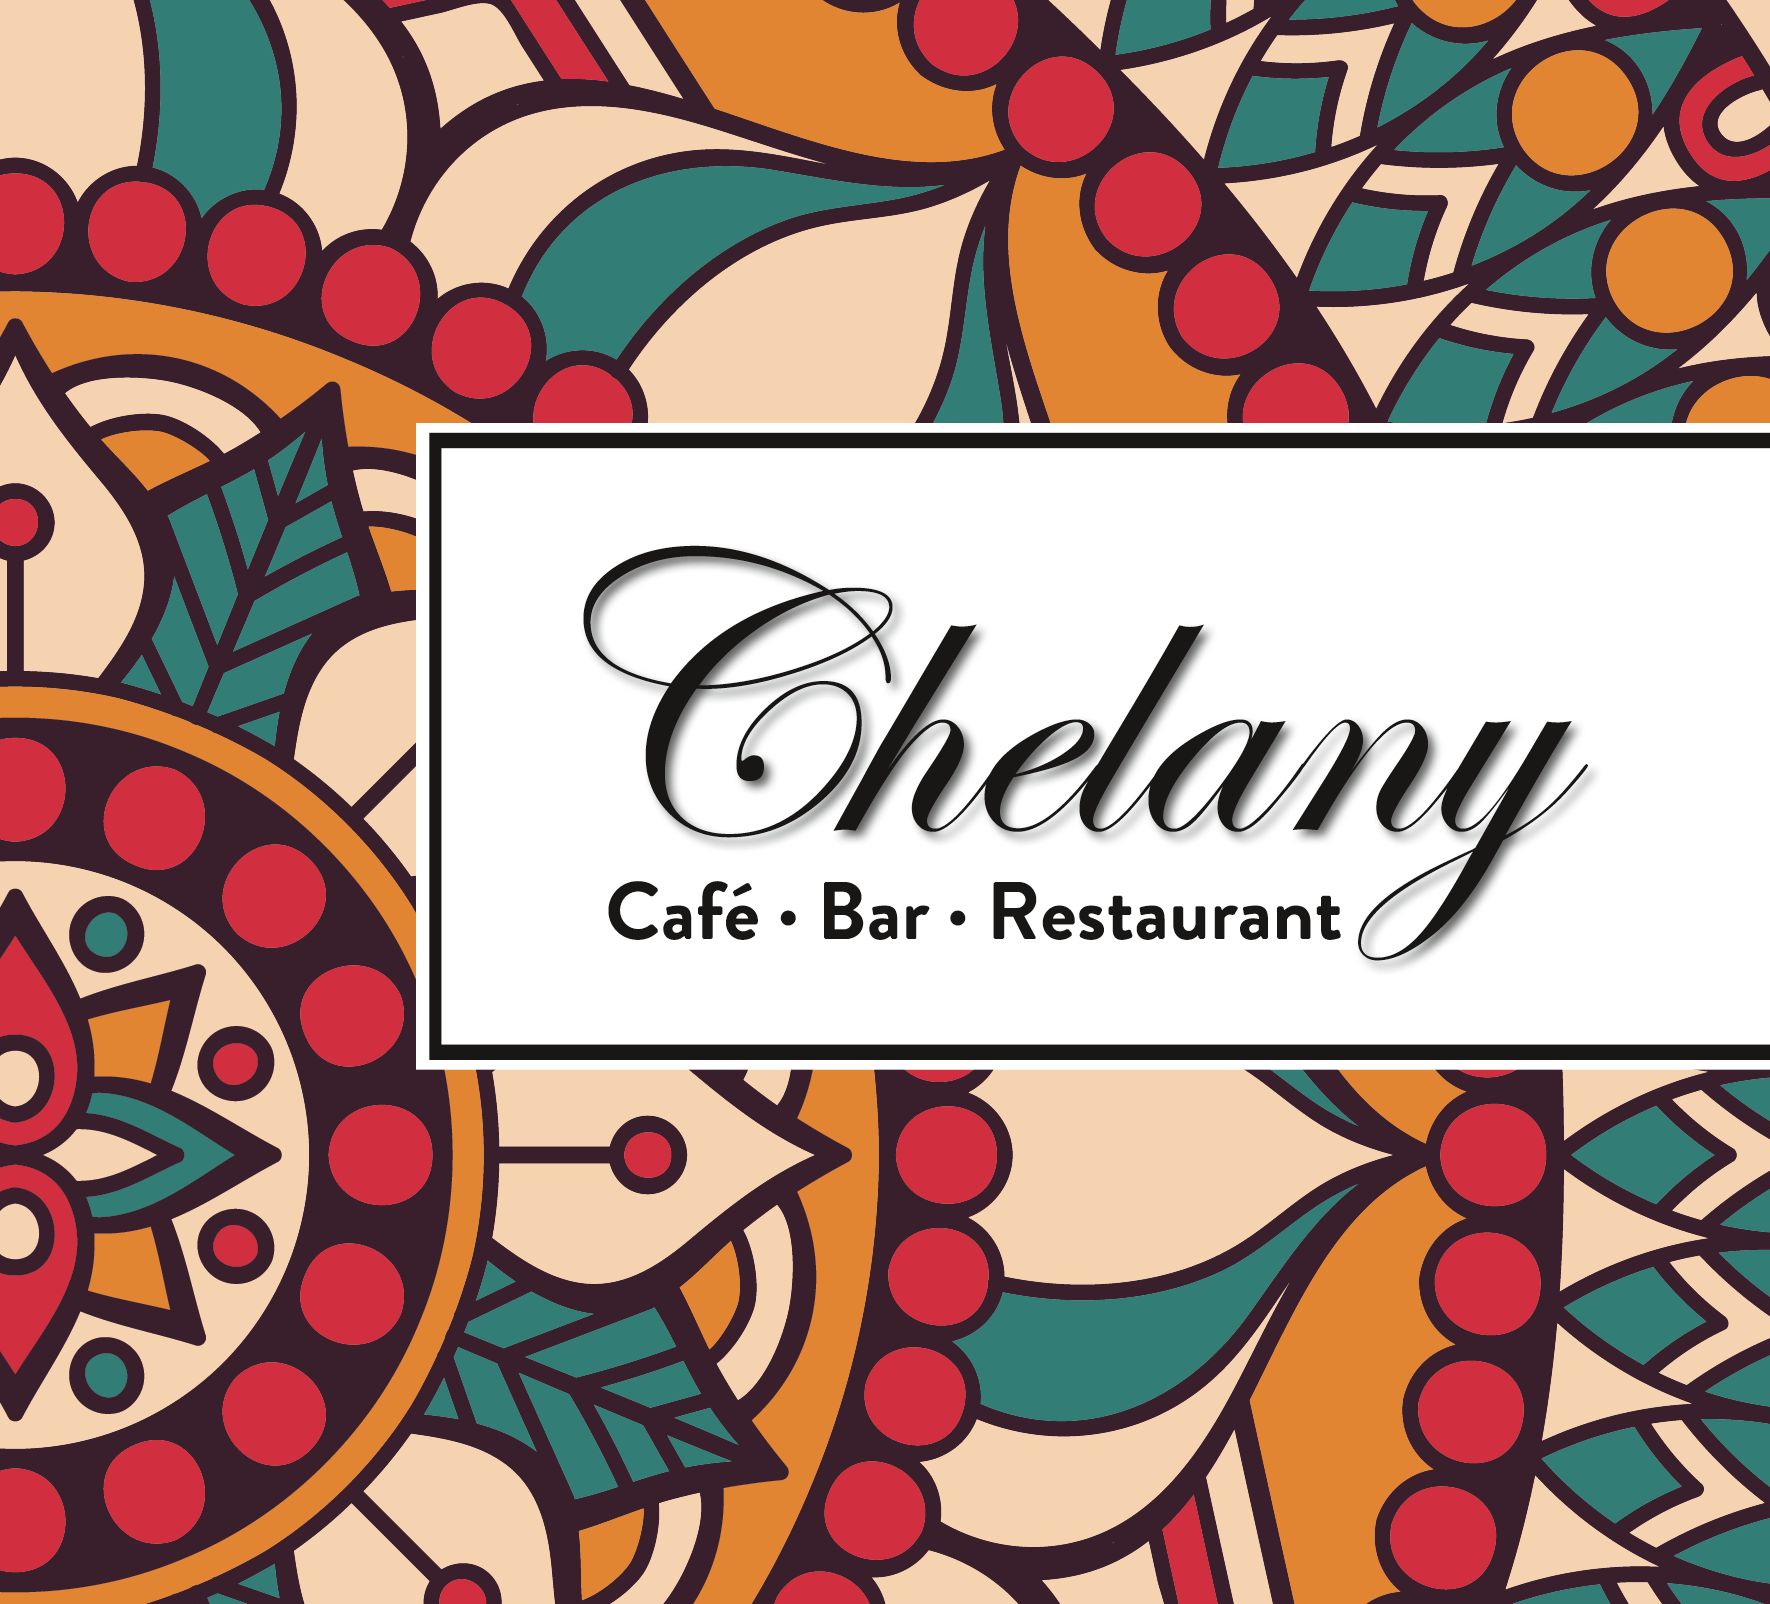 Chelany Restaurant Berlin Menue